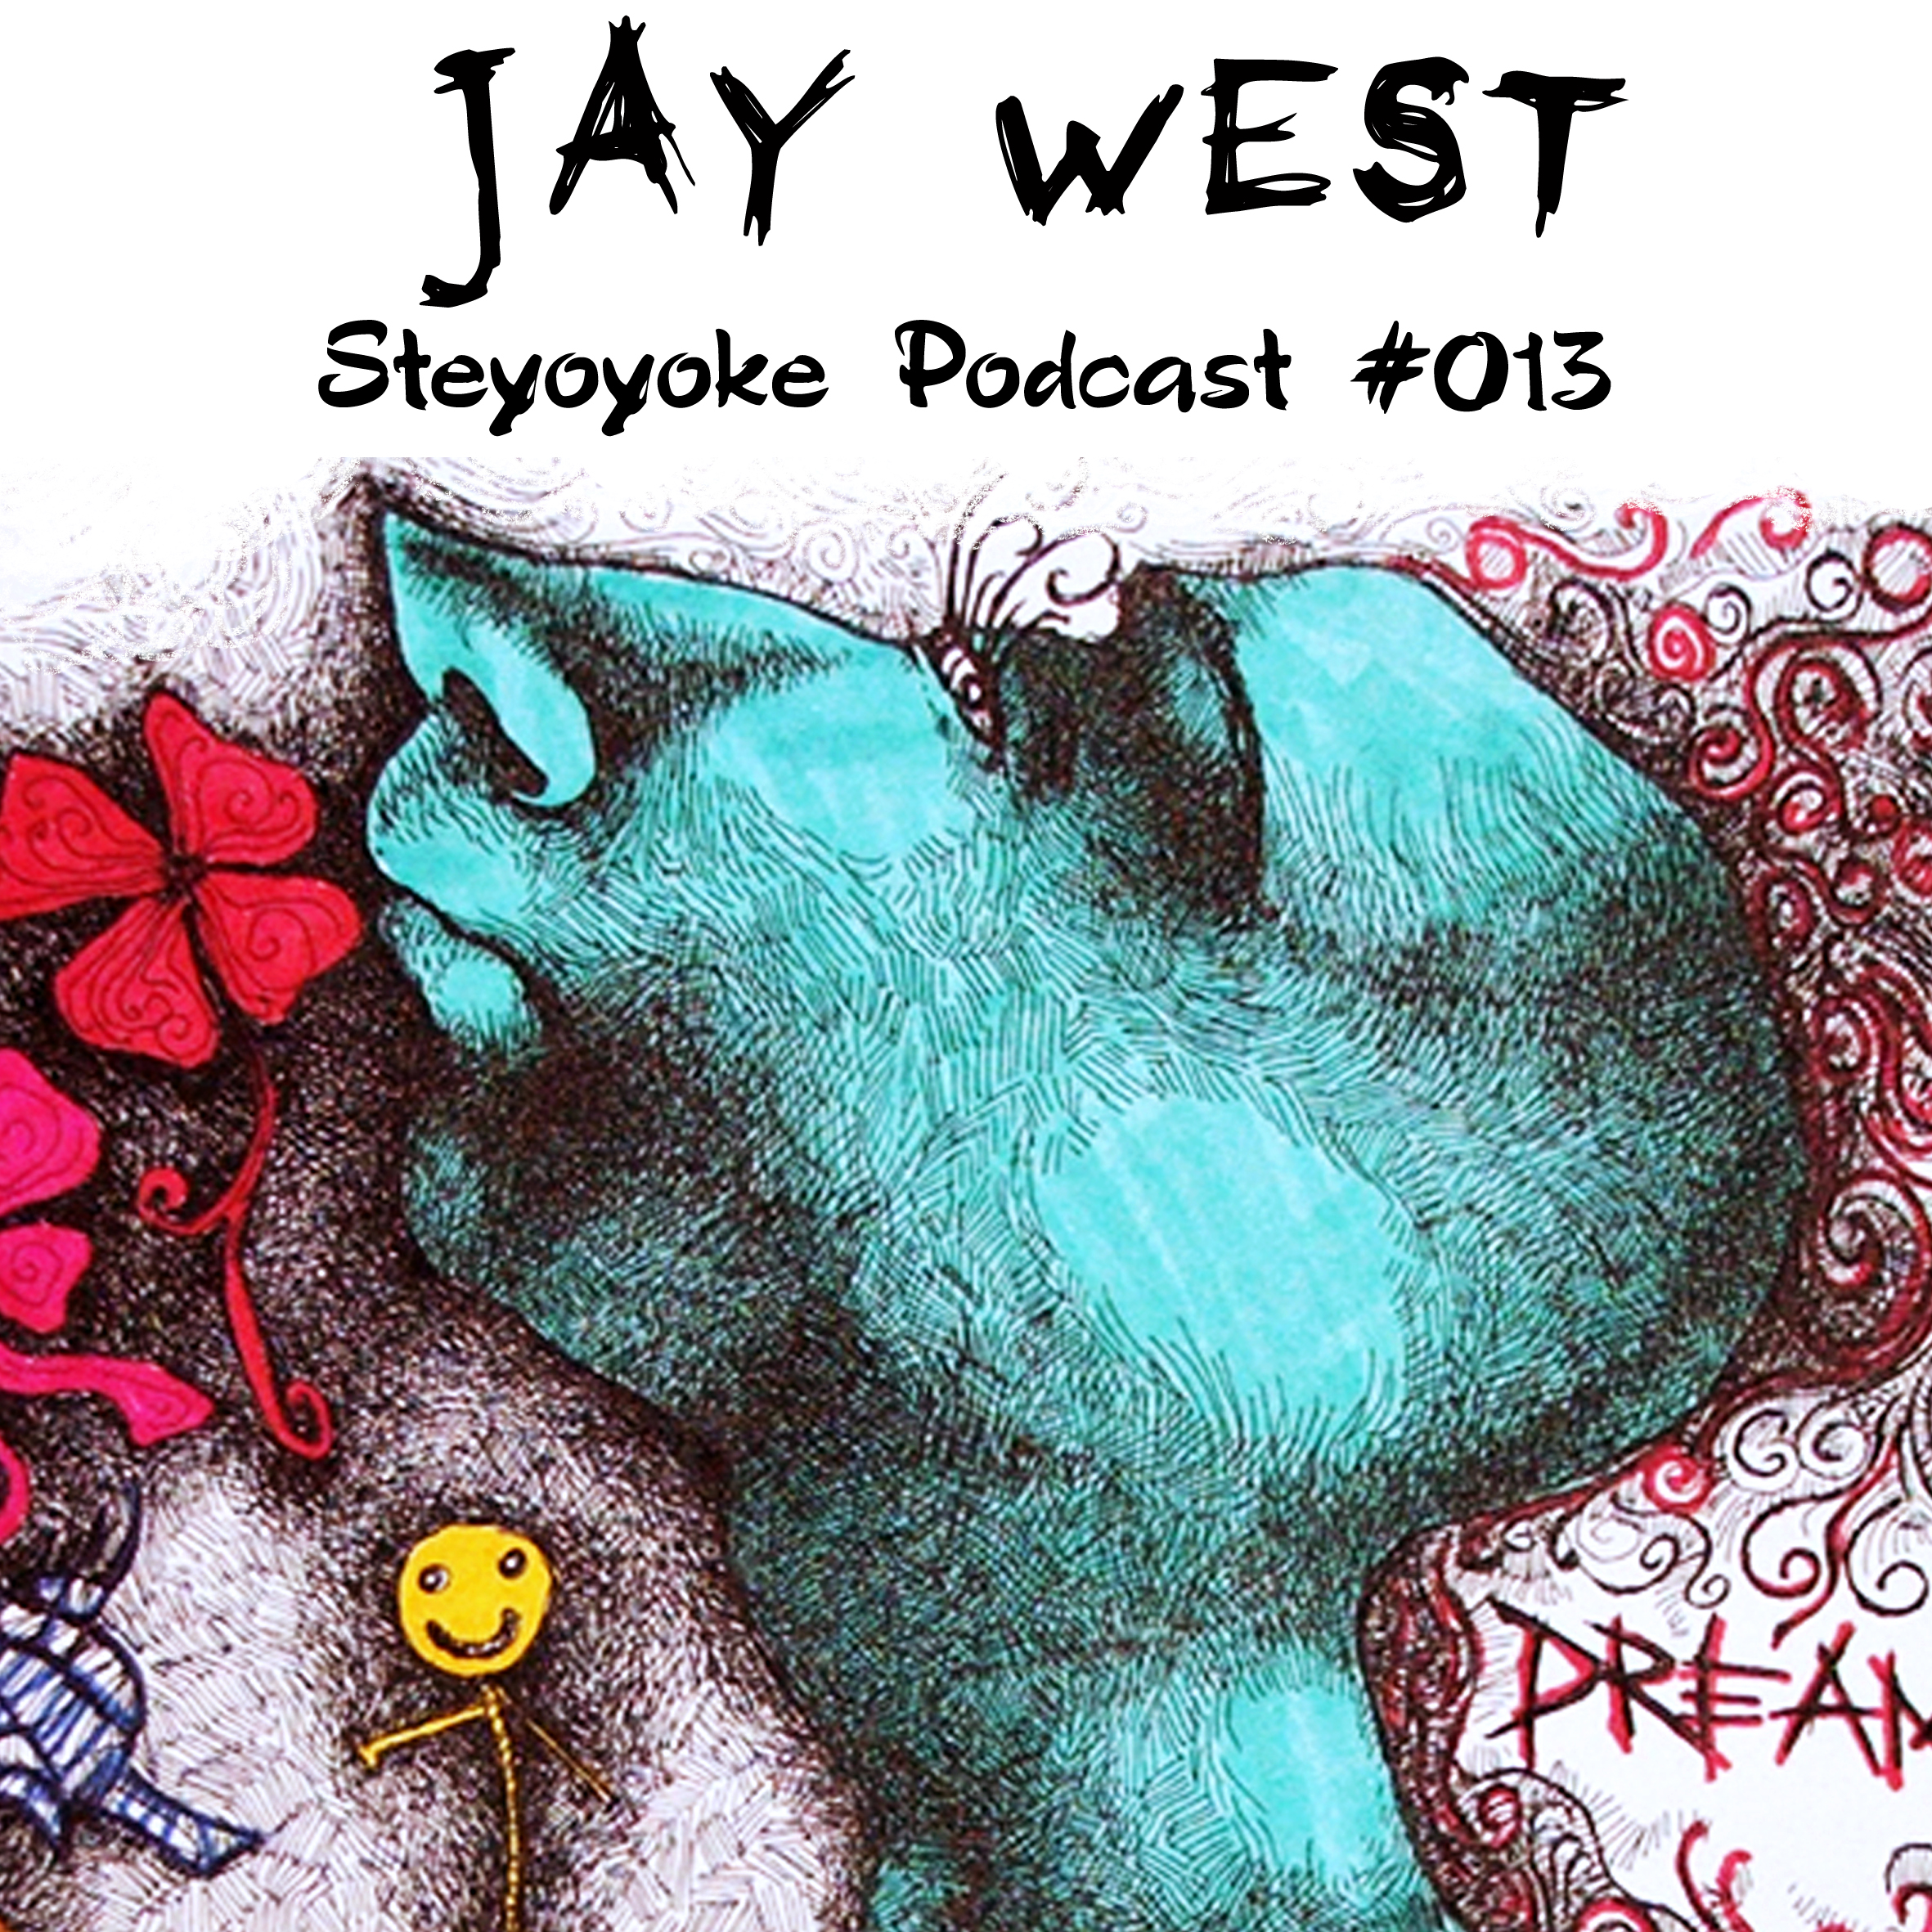 Jay West - Steyoyoke Podcast